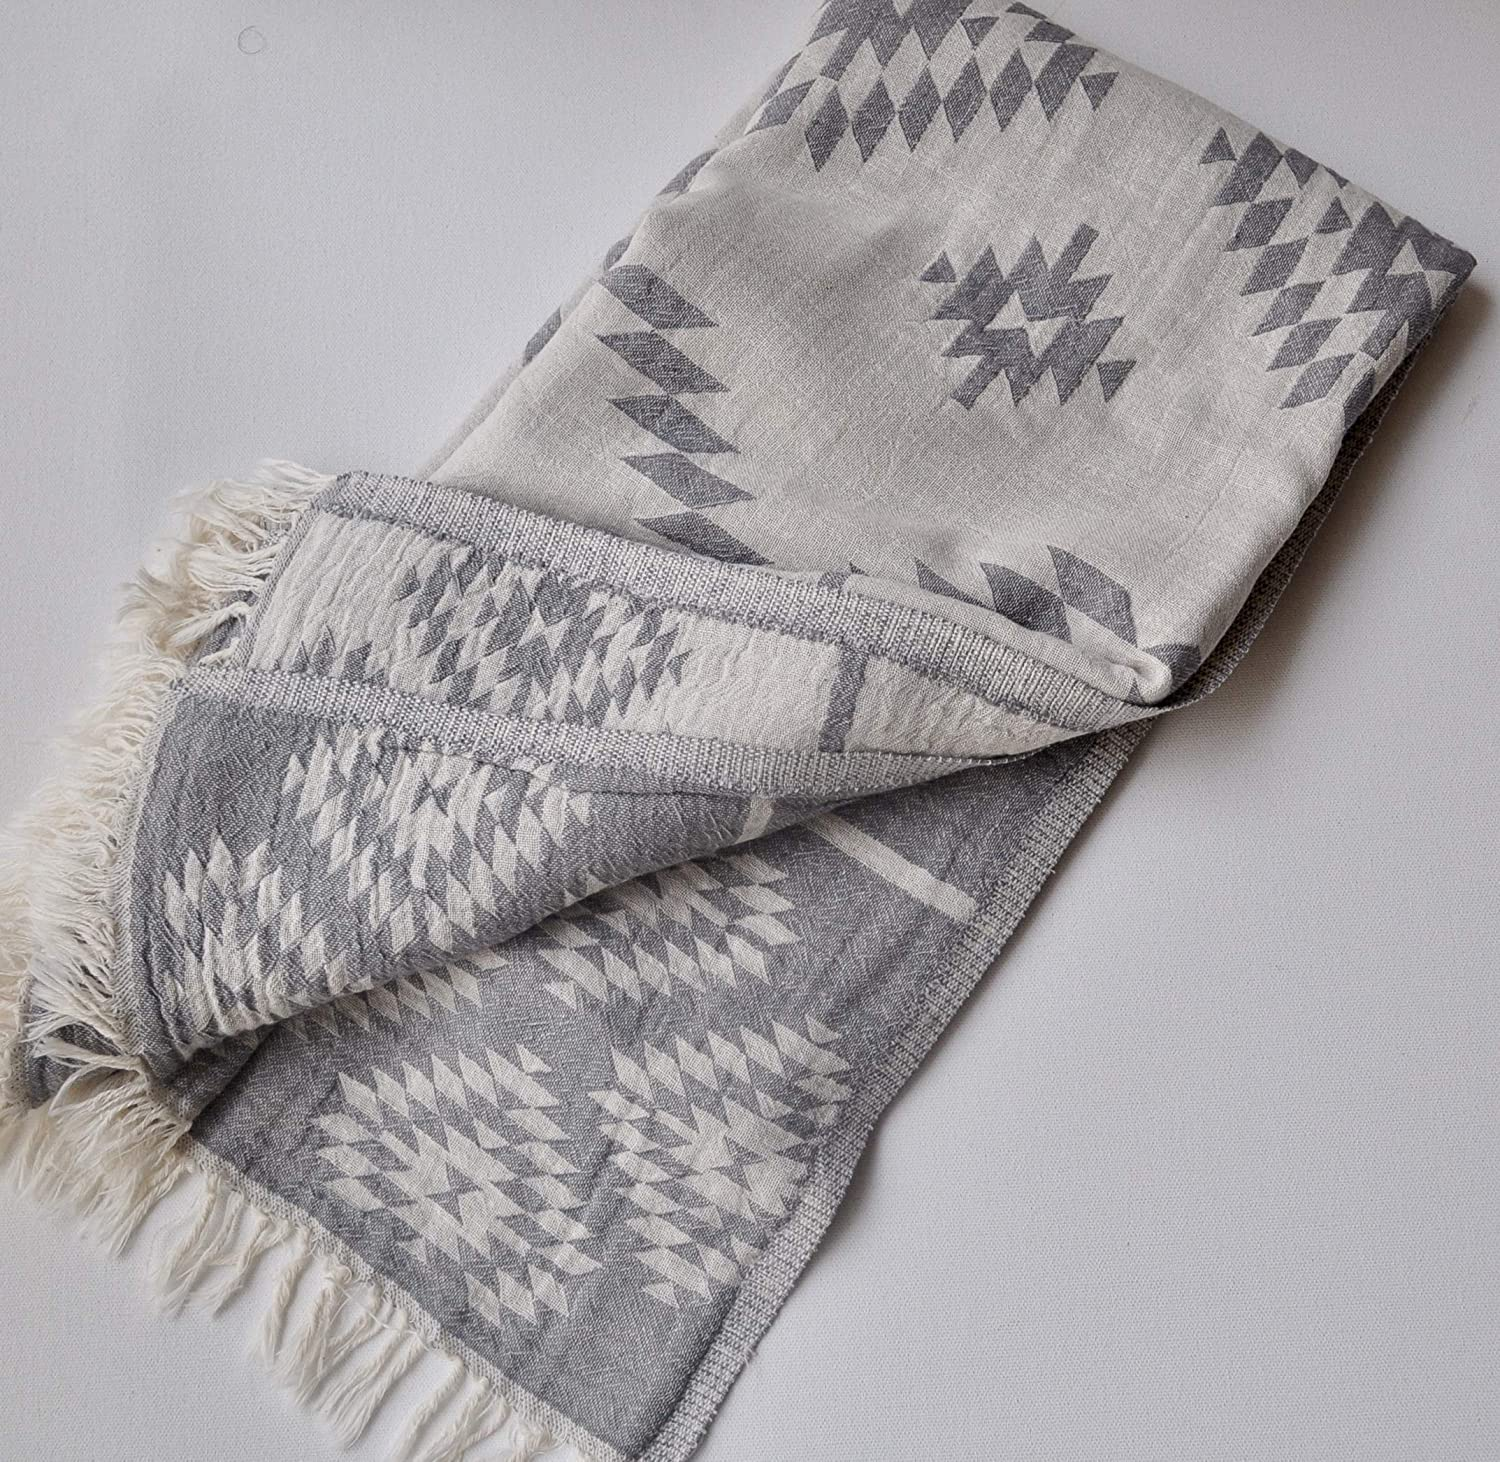 Turkish Topics on TV Towel Southwestern style 2 sides and San Diego Mall grey color 7 ivory